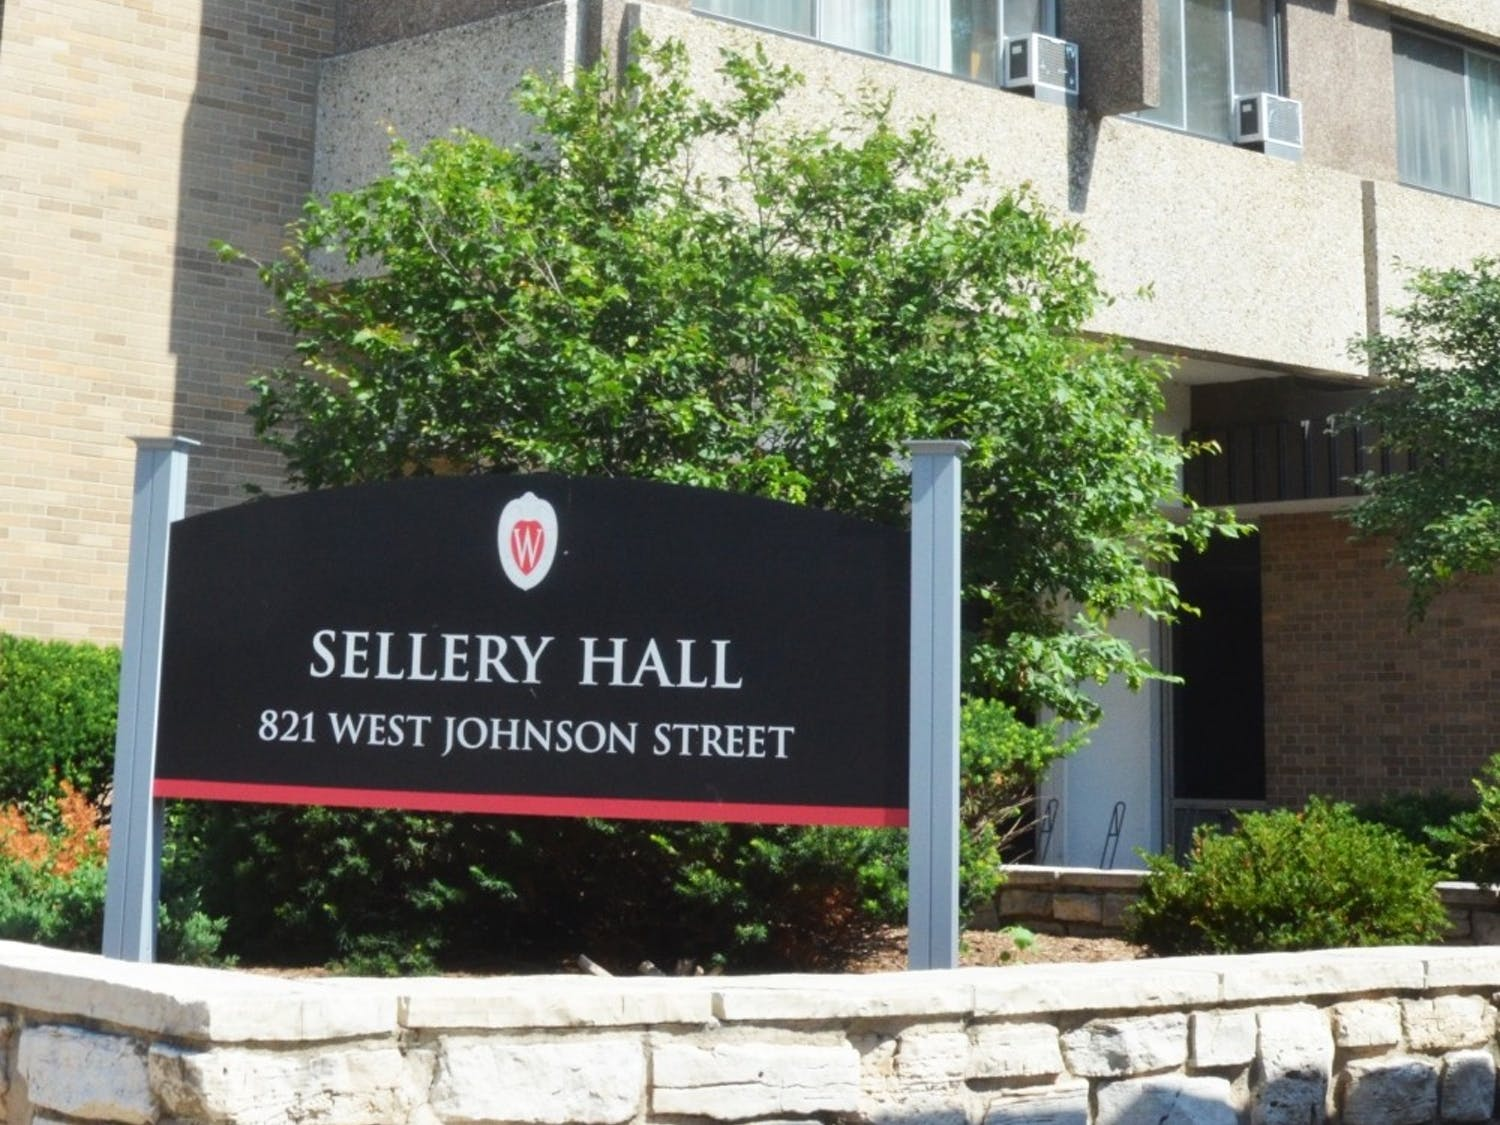 Larry Seidl, 18, was arrested twice in two consecutive weekends for incidents in Sellery and Ogg Halls.